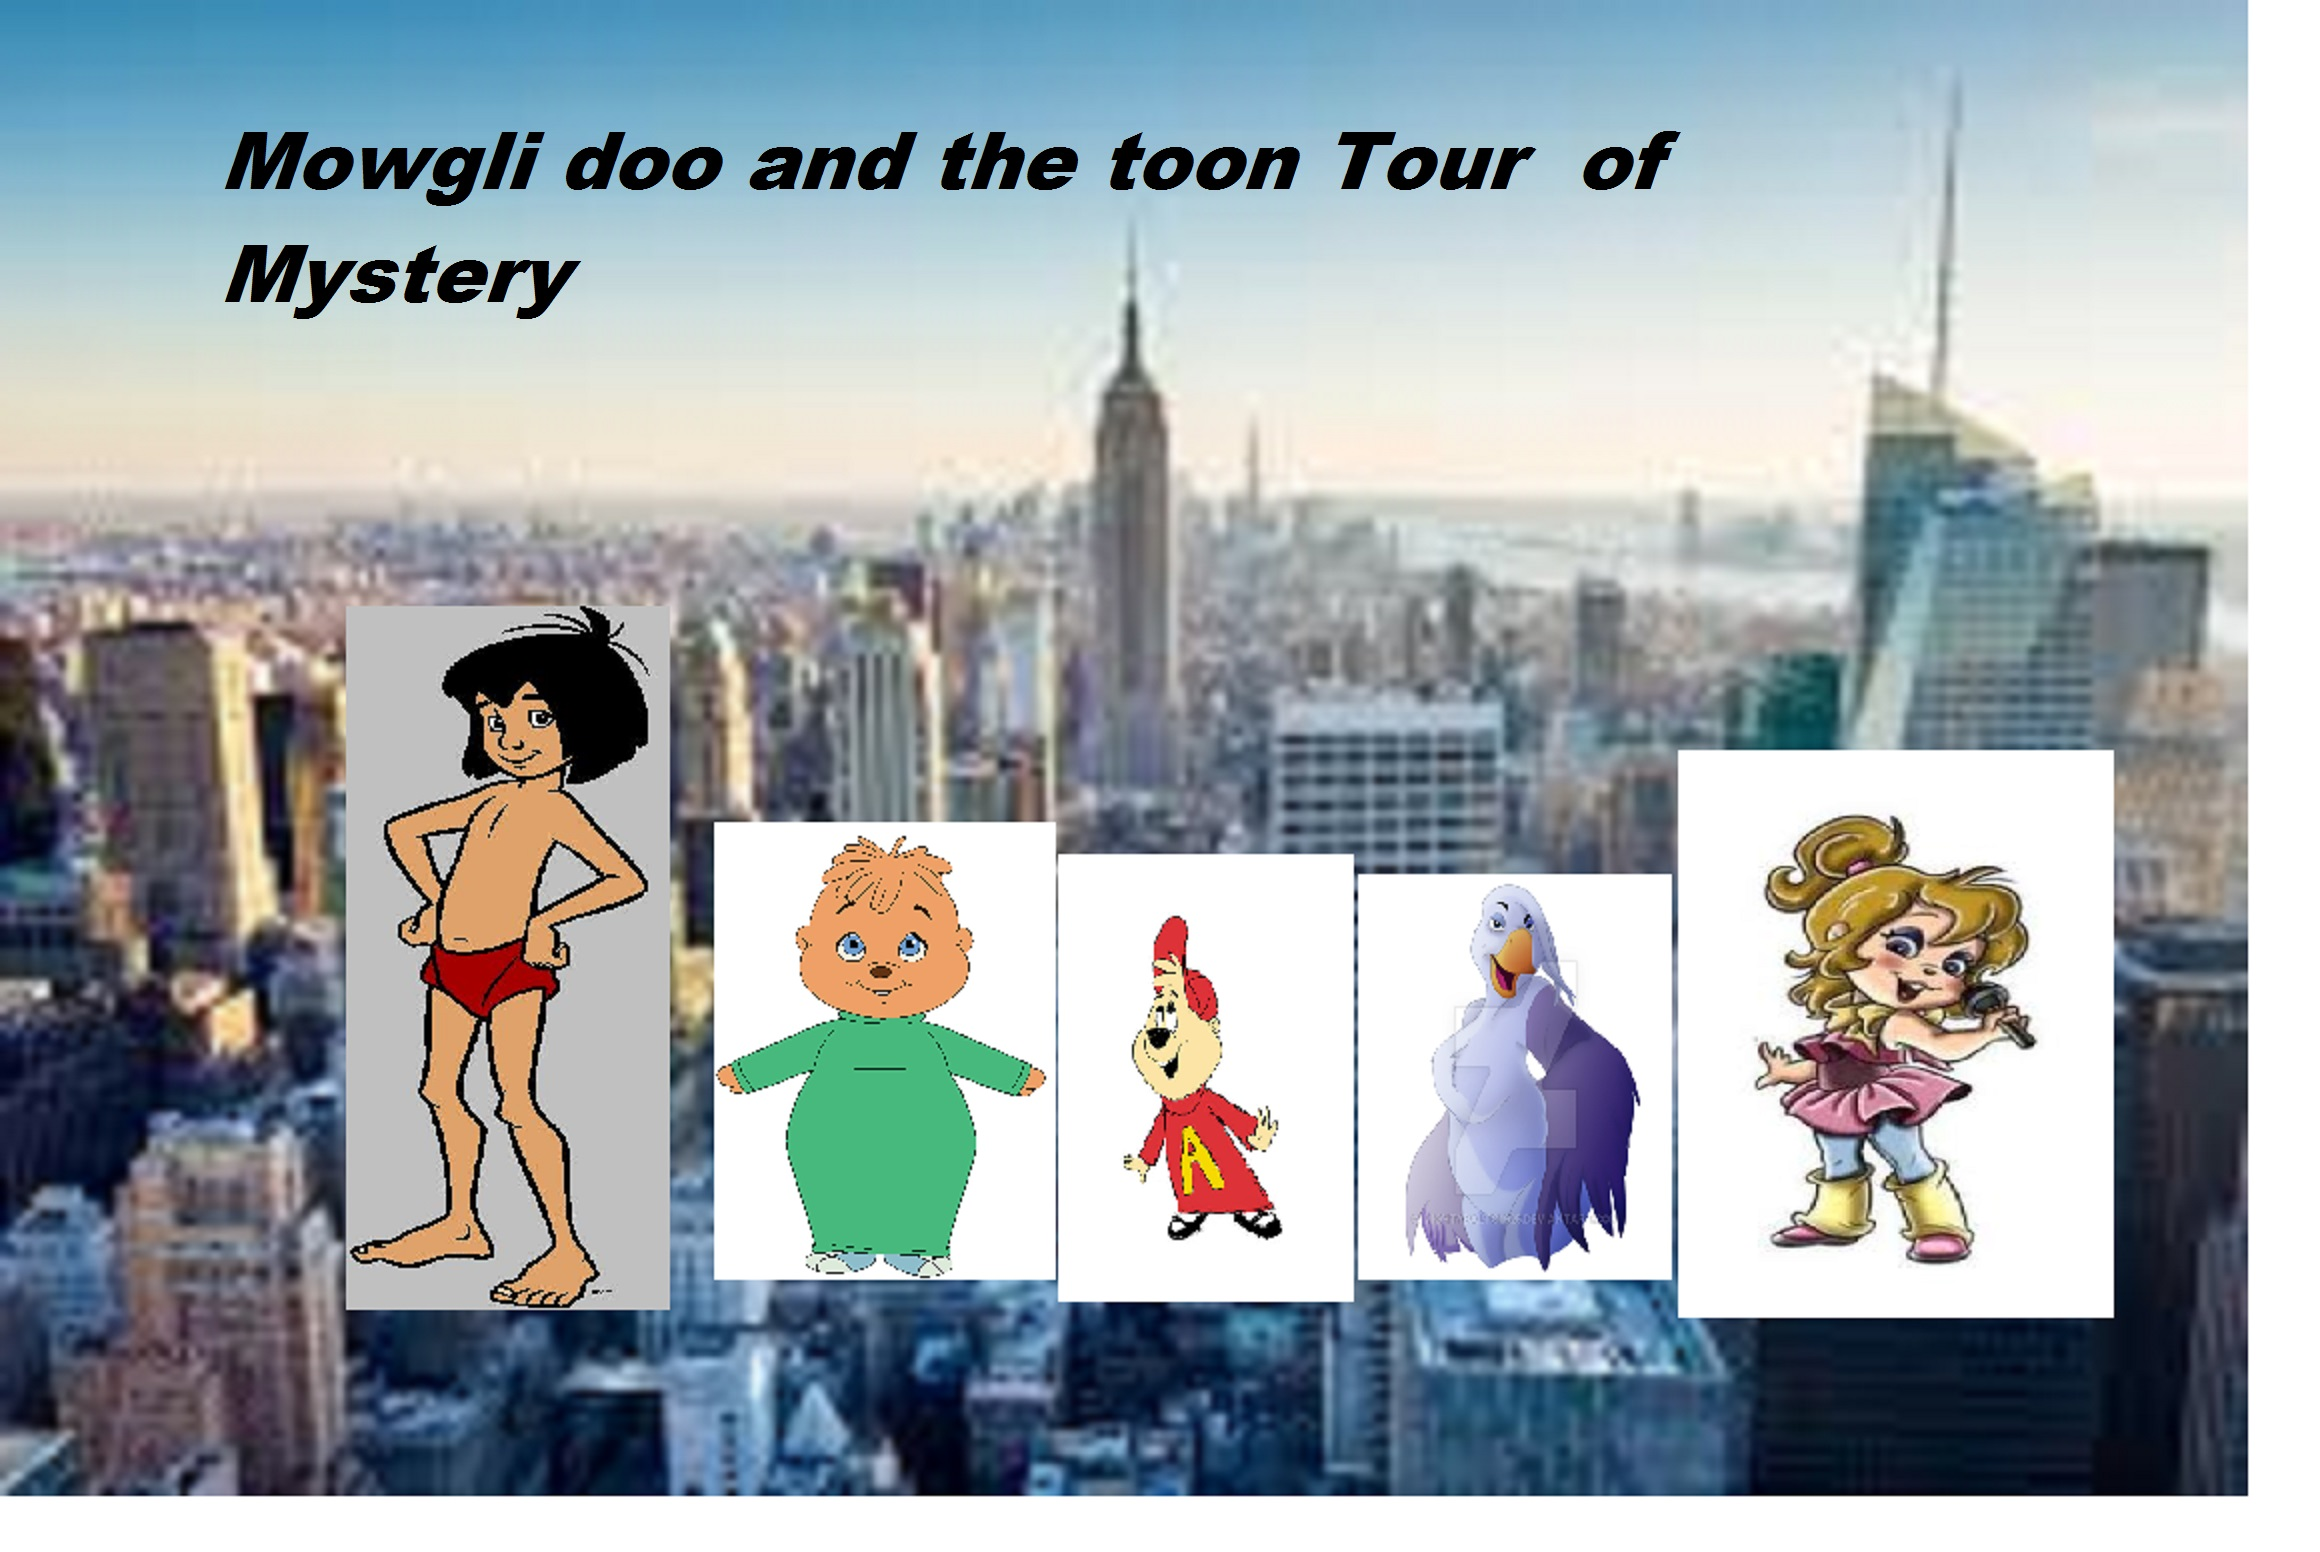 Mowgli Doo and the Toon Tour of Mysteries